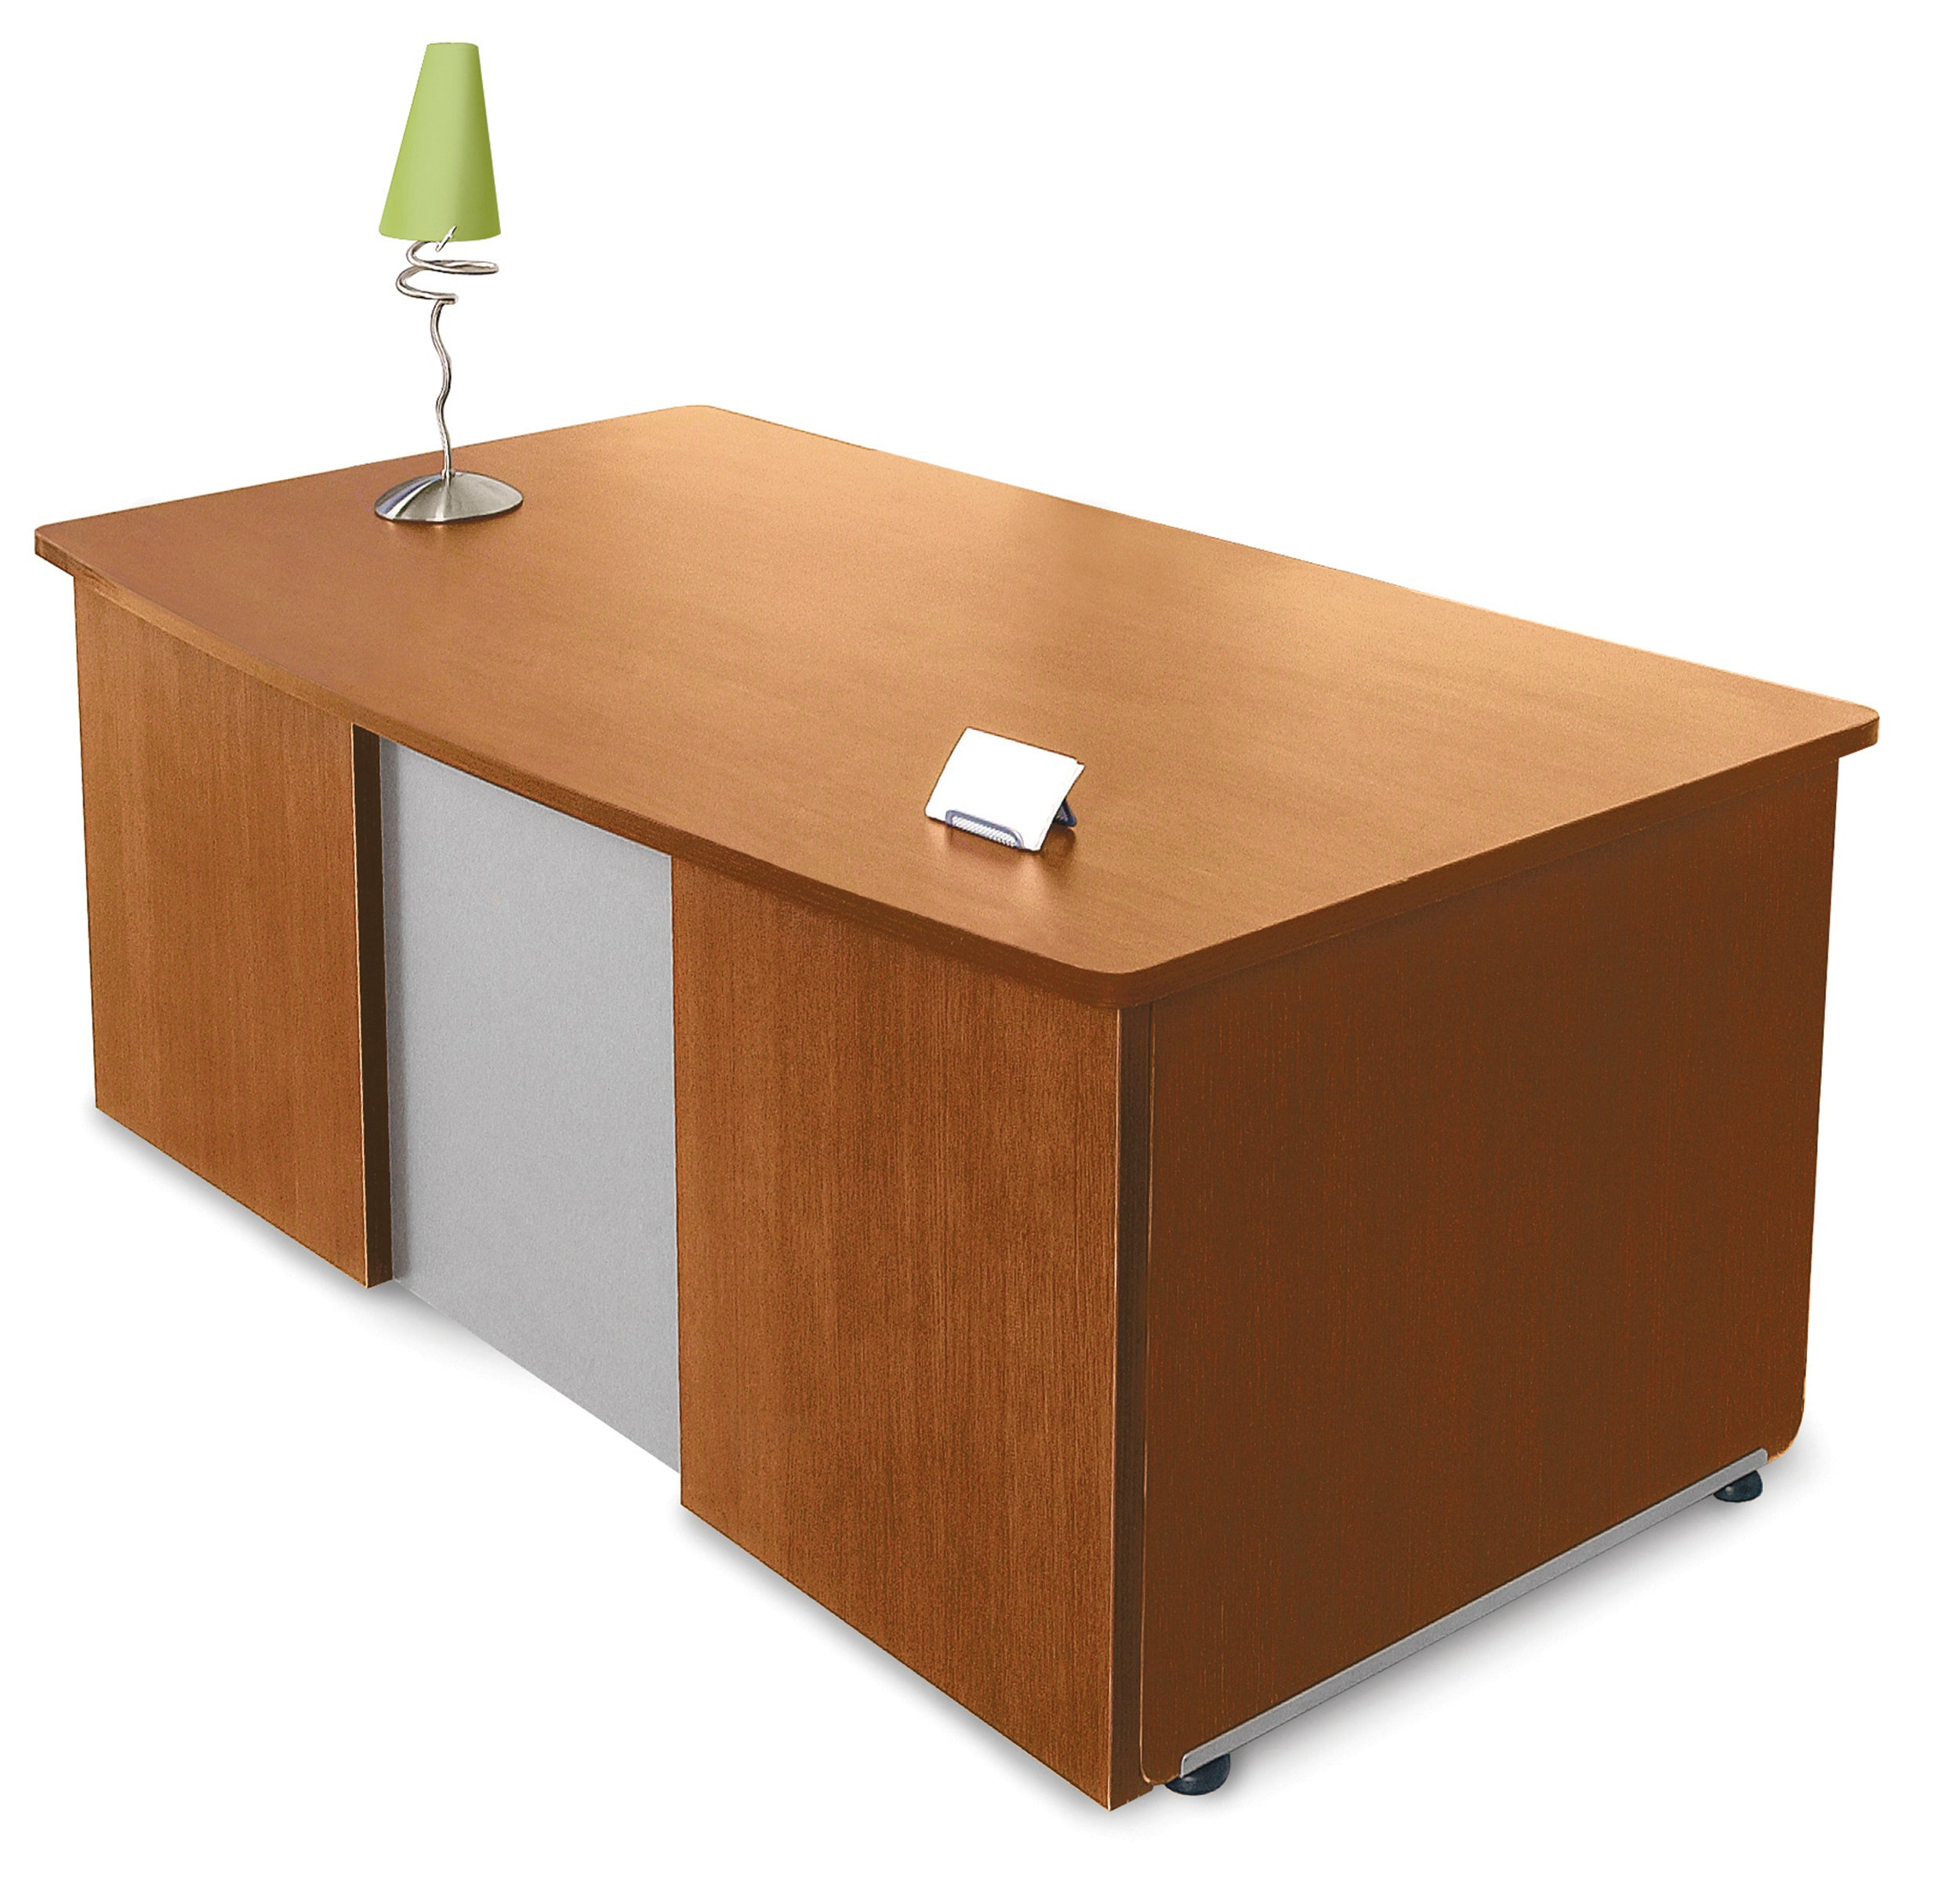 "Ofminc Model 55145 Venice Series Executive Office Desk, 36"" x 72"""